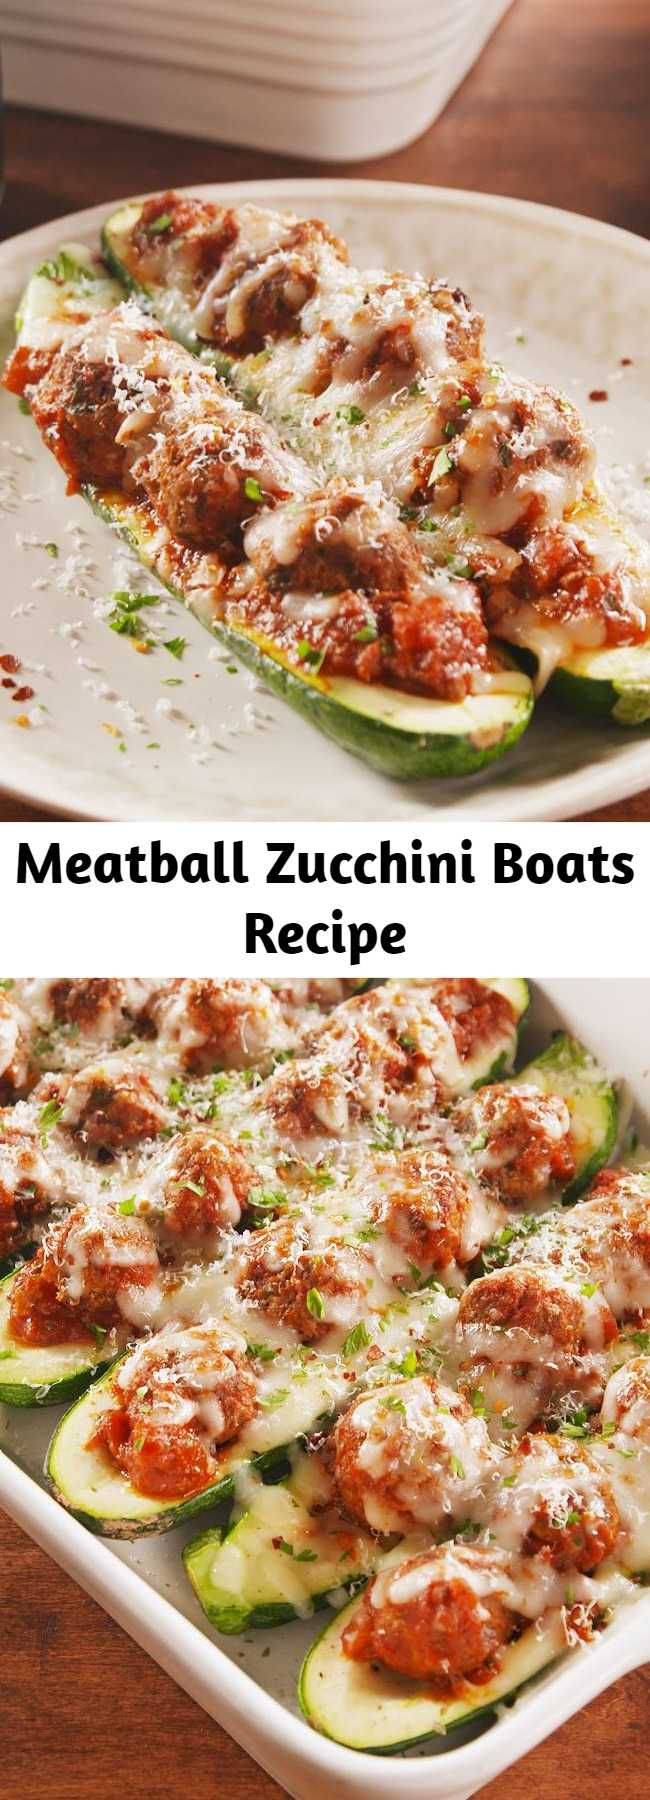 Meatball Zucchini Boats Recipe - Meatball Zucchini Boats are the low-carb, high-protein way to eat a meatball sub. Want to go even MORE low-cal? Try these with ground turkey or chicken instead! #healthyrecipes #easyrecipes #meatballs #zuccchiniboats